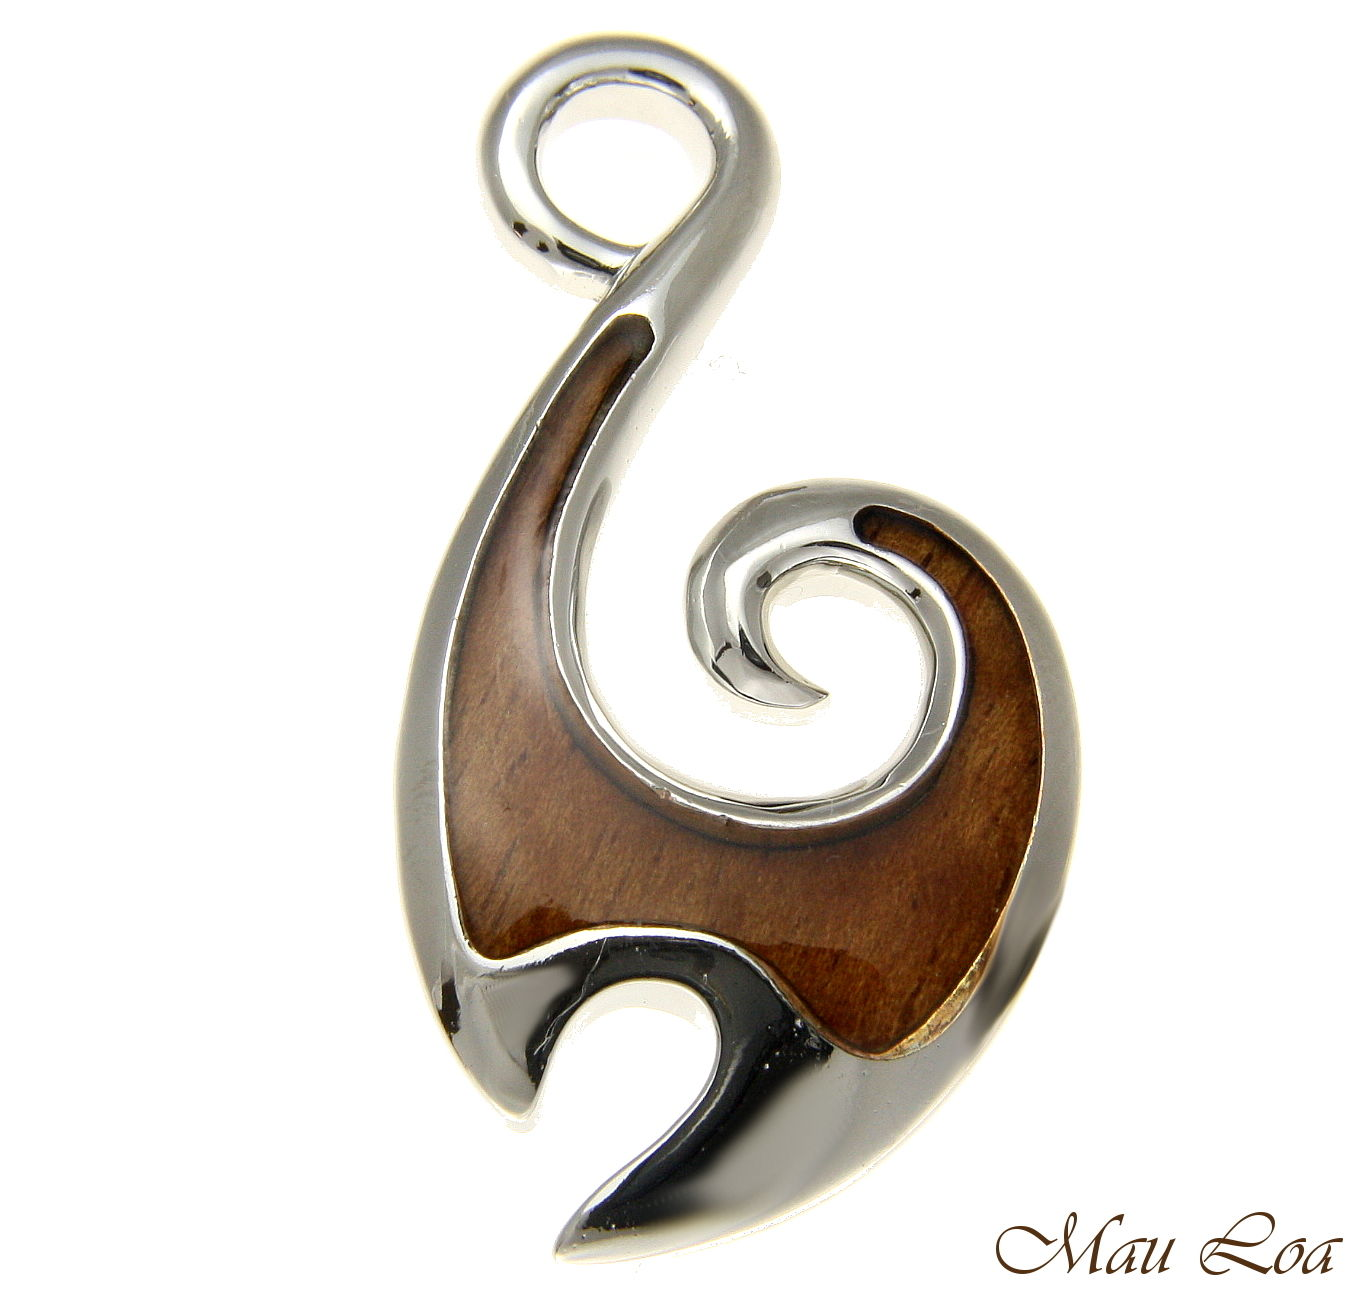 Koa Wood Hawaiian Ocean Wave Fish Hook Rhodium Silver Plated Brass Pendant Charm